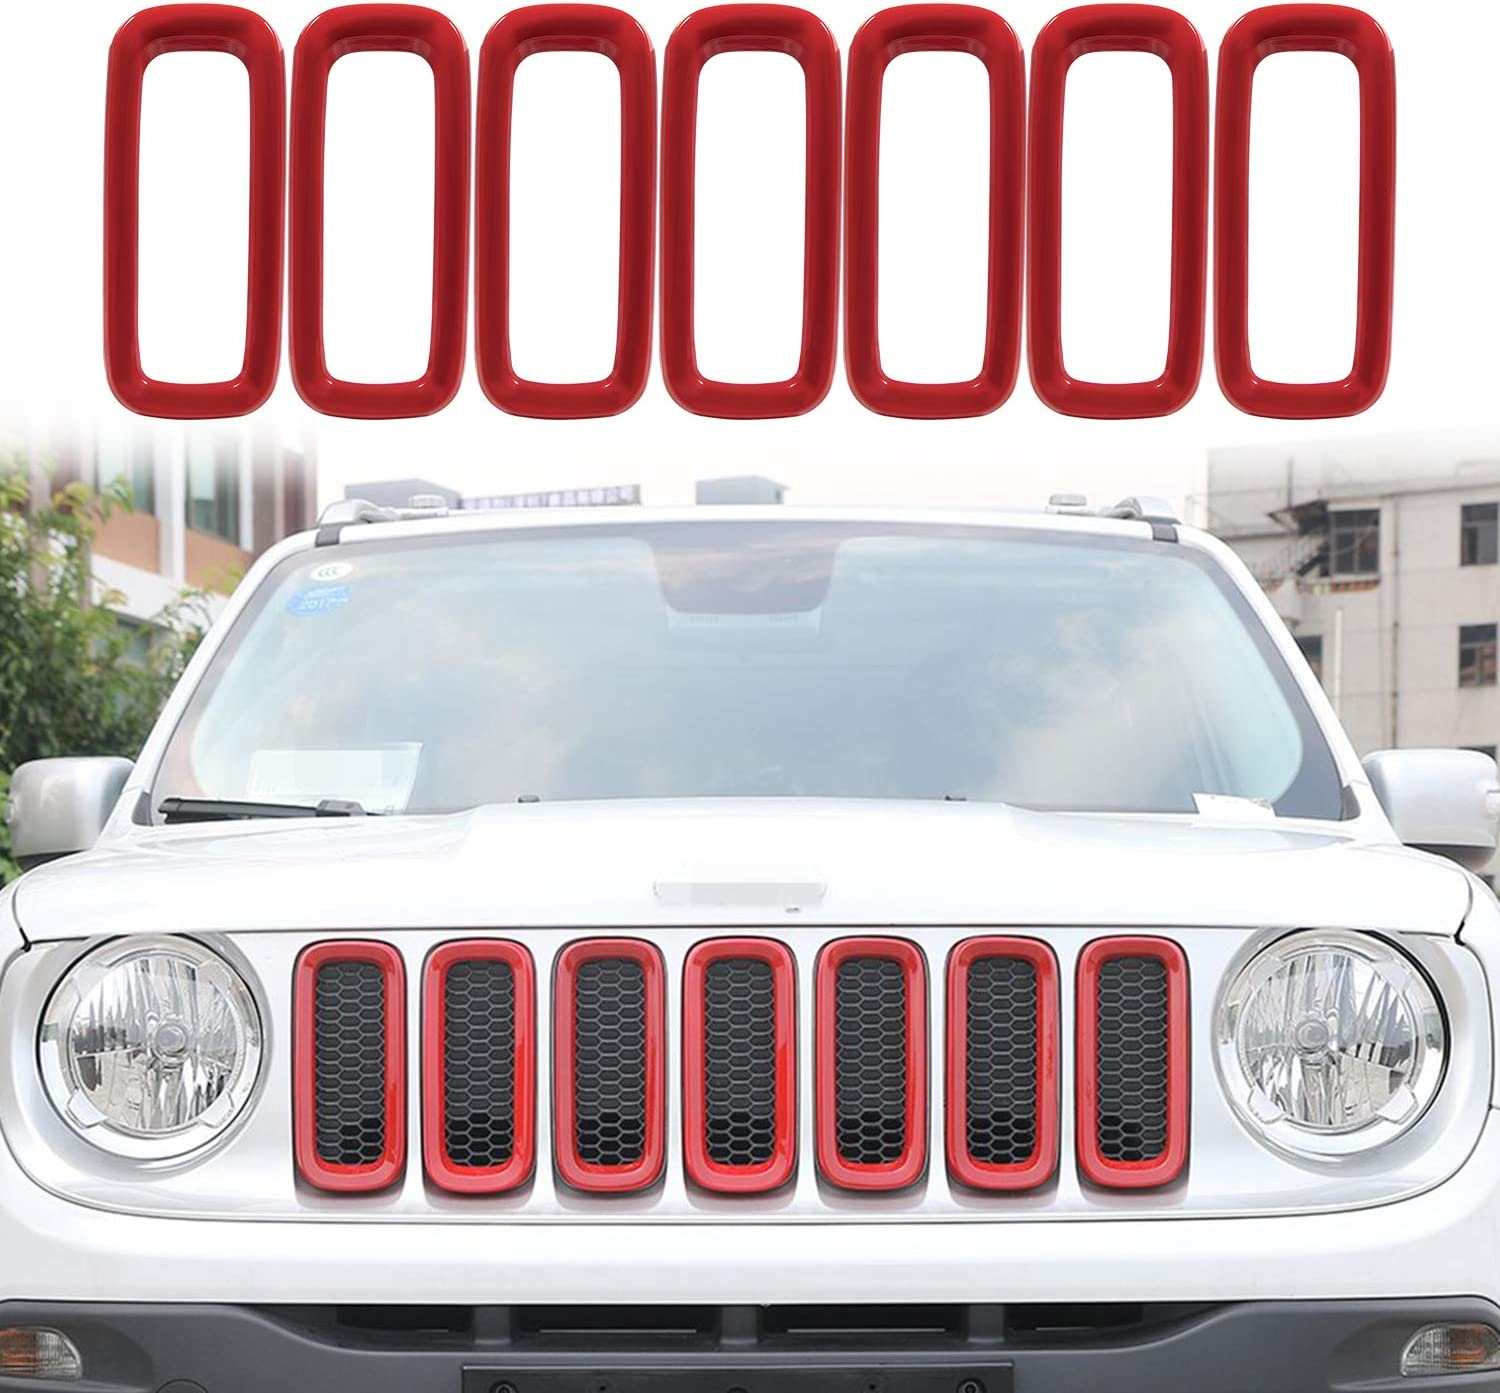 Yoursme Front Grill Grille Inserts for Jeep Renegade 2015 2016 2017 2018 ABS Grill Guard Cover Trim Red 7PCs